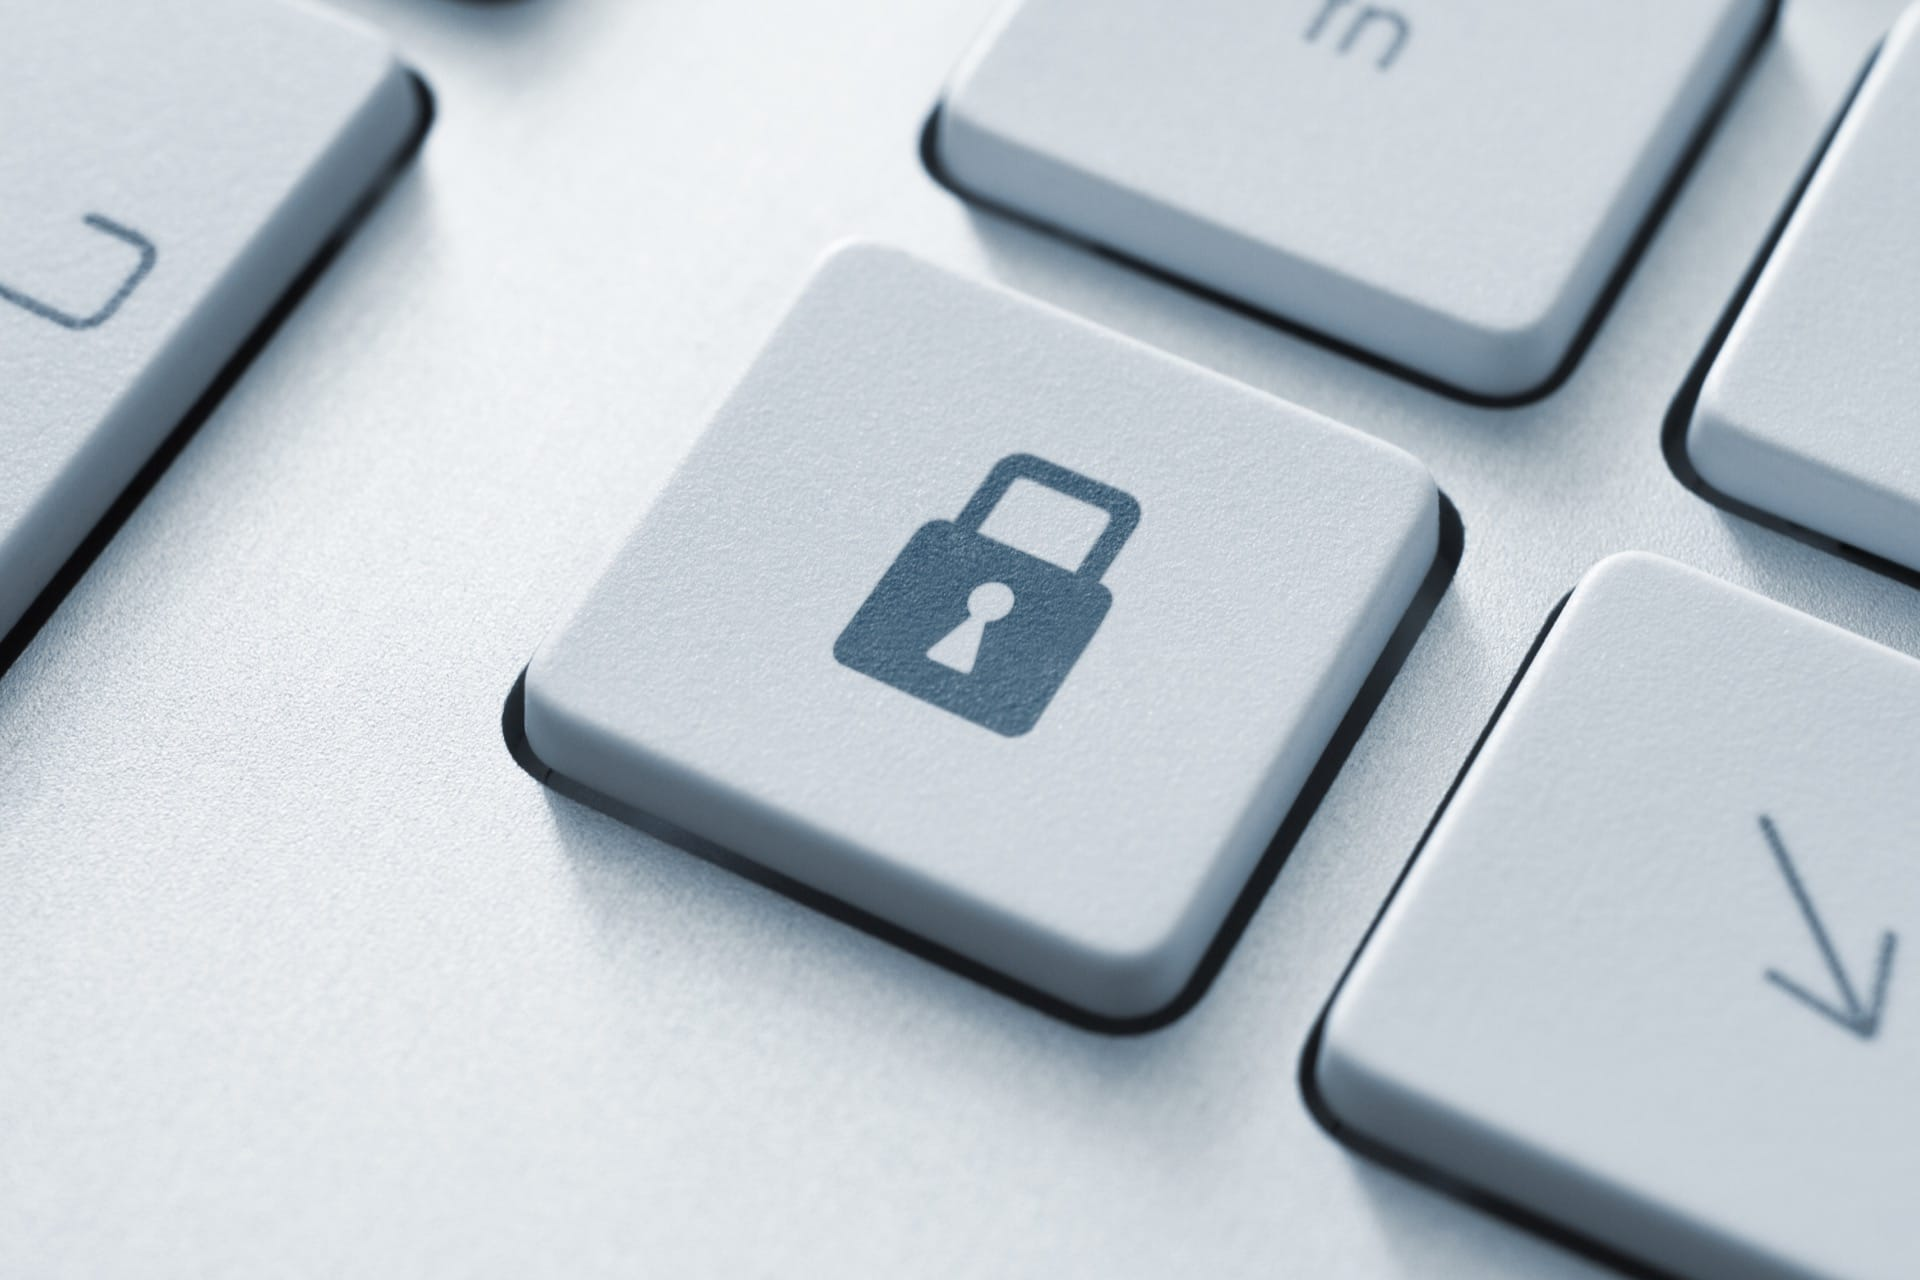 European Data Protection Supervisor shares his position on the Digital Services Act Package